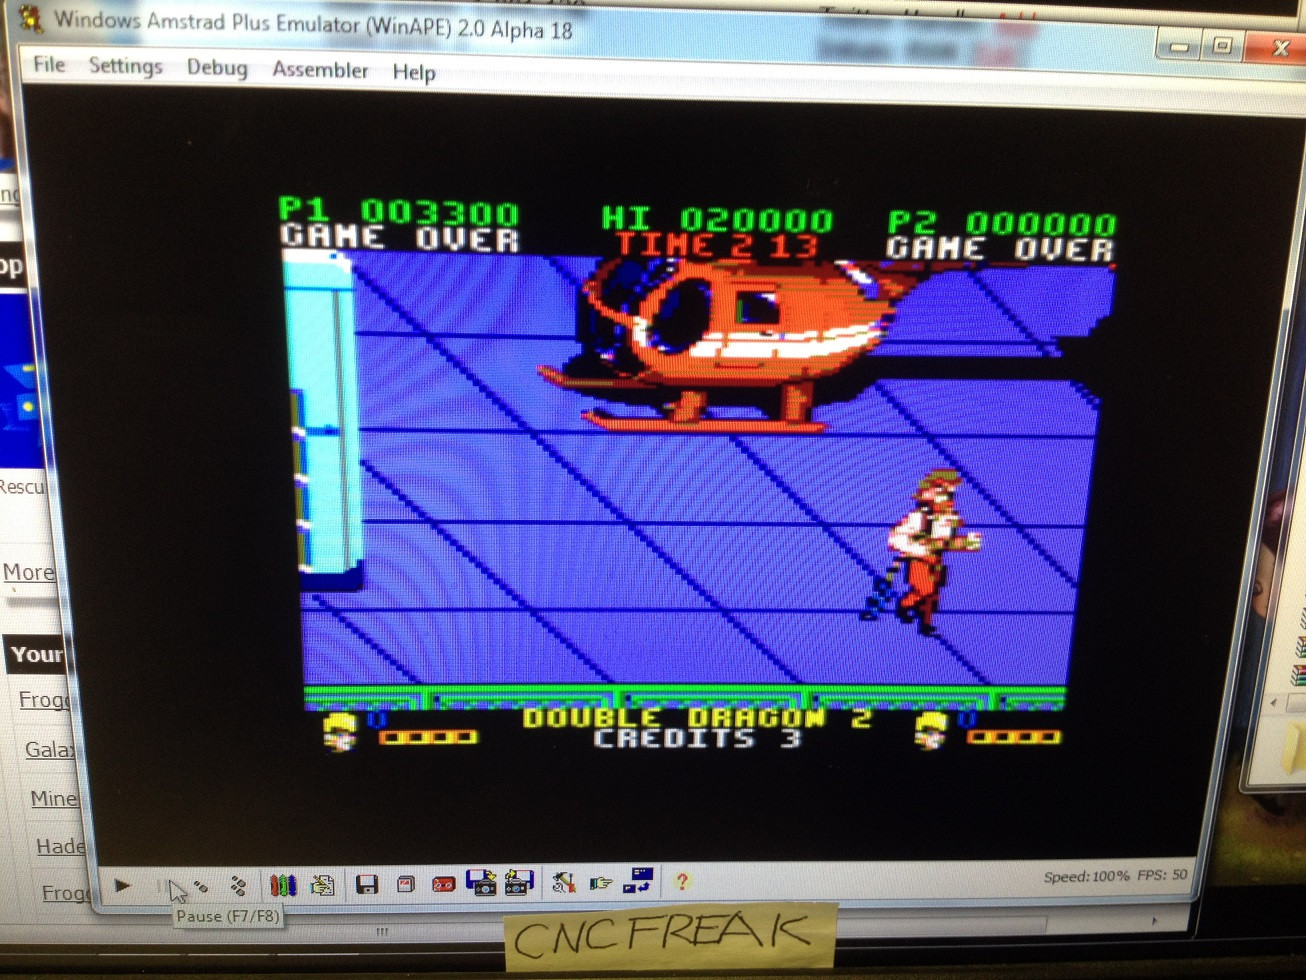 Double Dragon 2 3,300 points